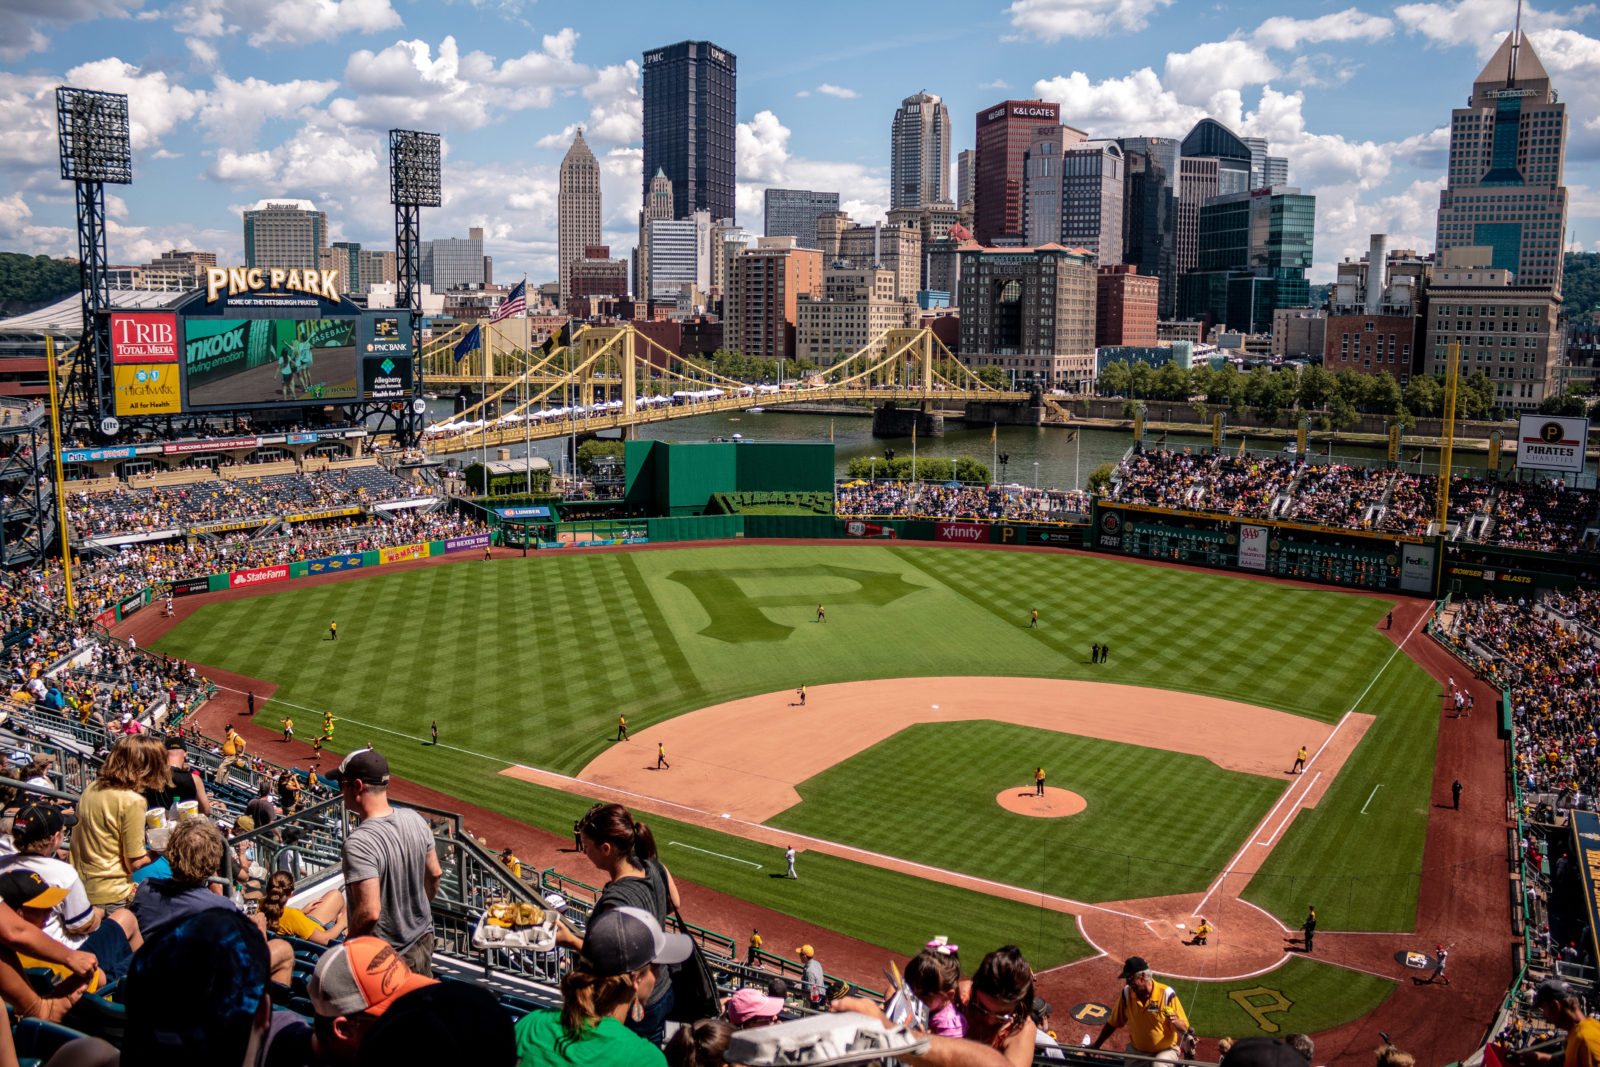 Pirates Baseball Stadium